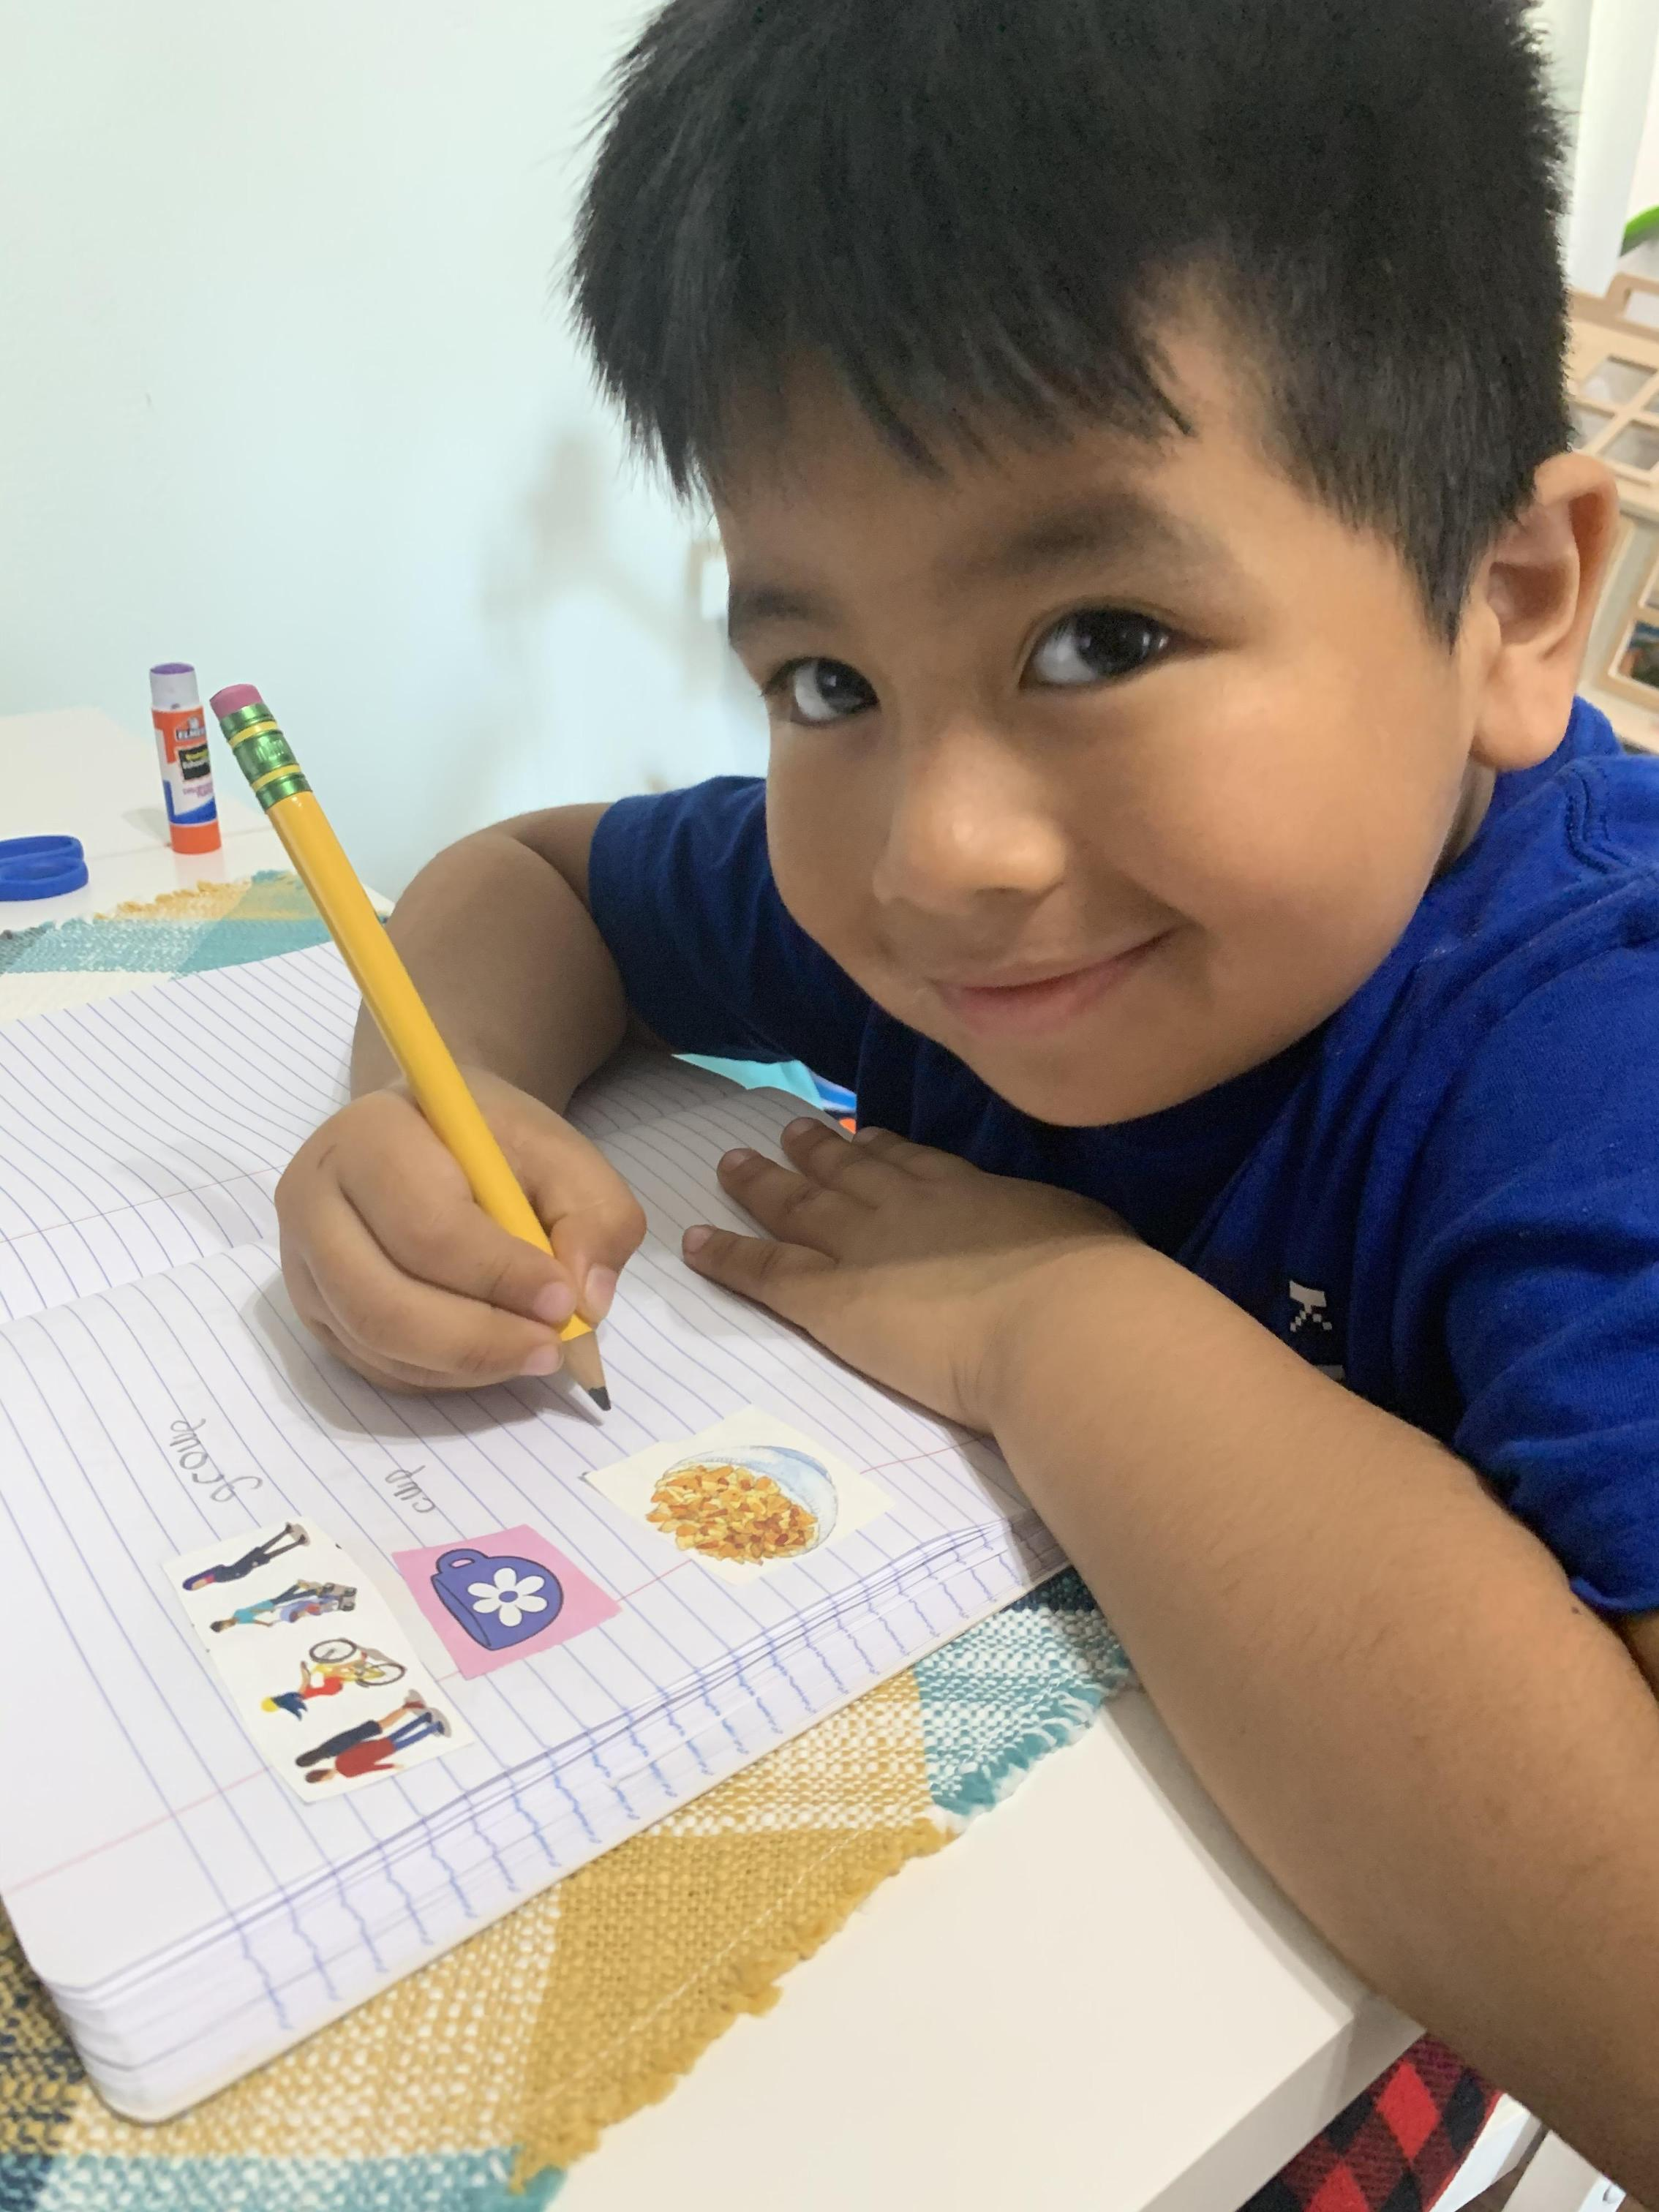 Kindergarten student at home during remote learning. He is writing and drawing in his class journal.